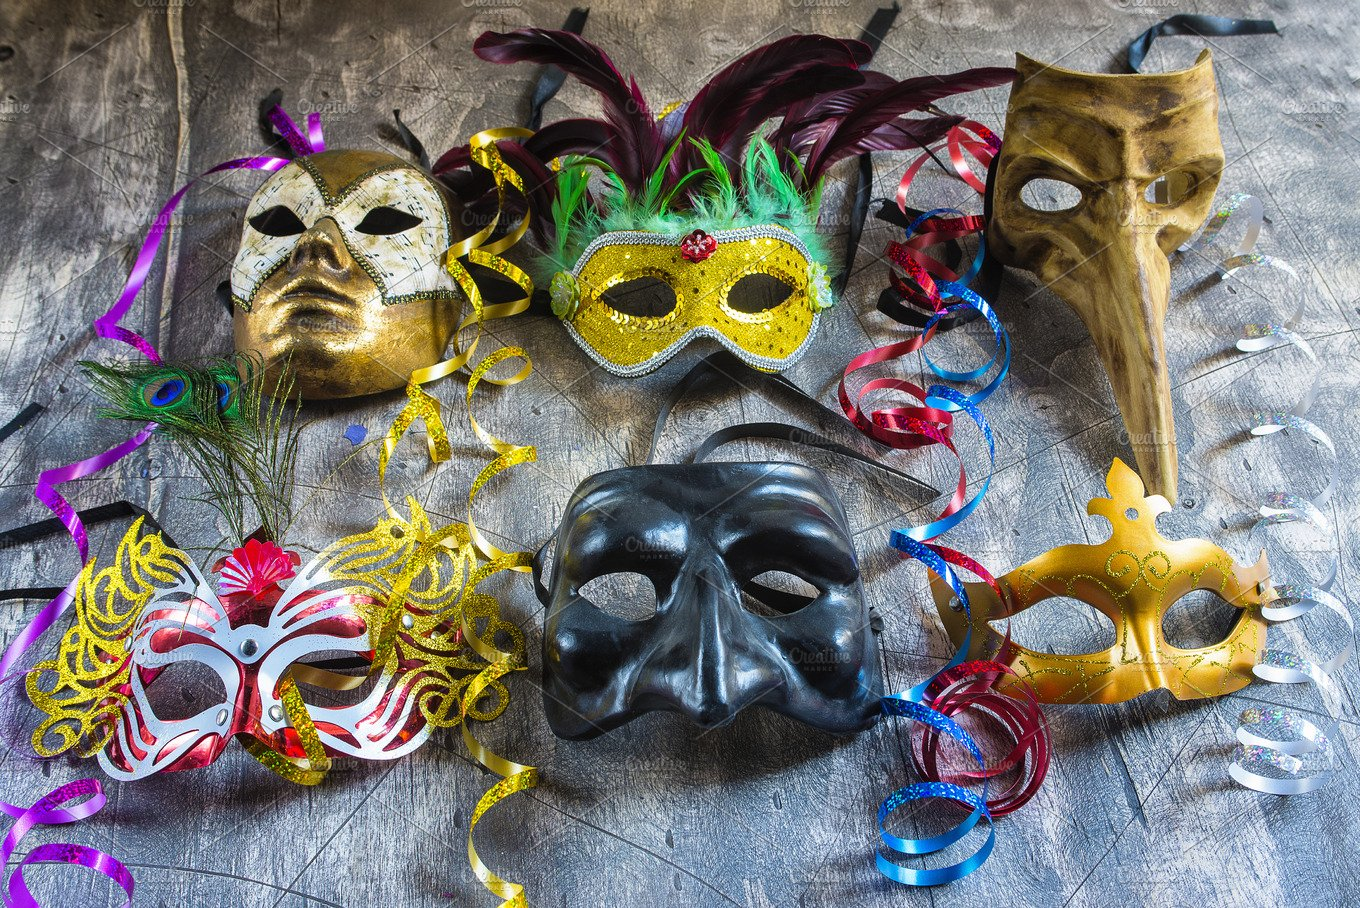 carnival masks and serpentine arts entertainment photos